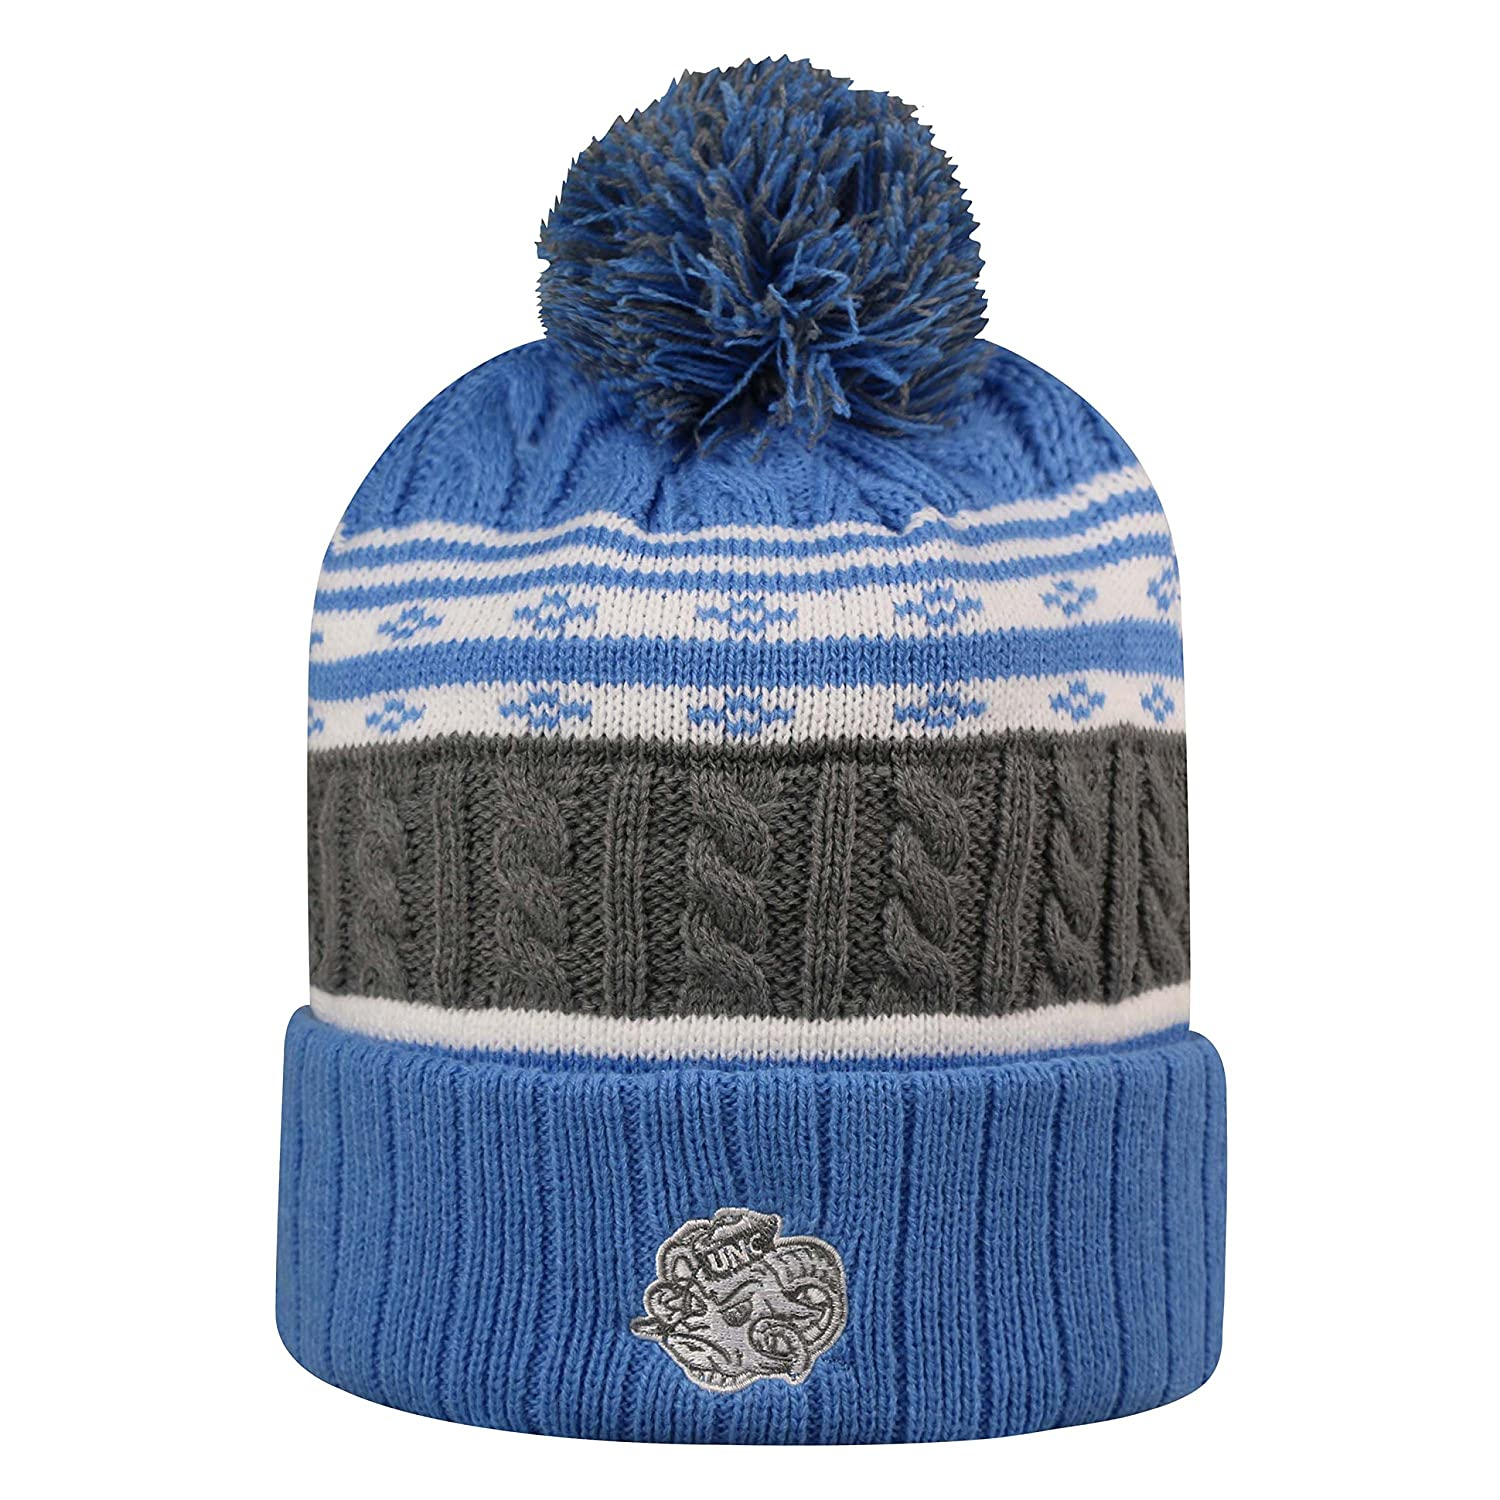 Top of the World North Carolina Tar Heels Official NCAA Cuffed Knit Altitude Beanie Stocking Stretch Sock Hat Cap 811536